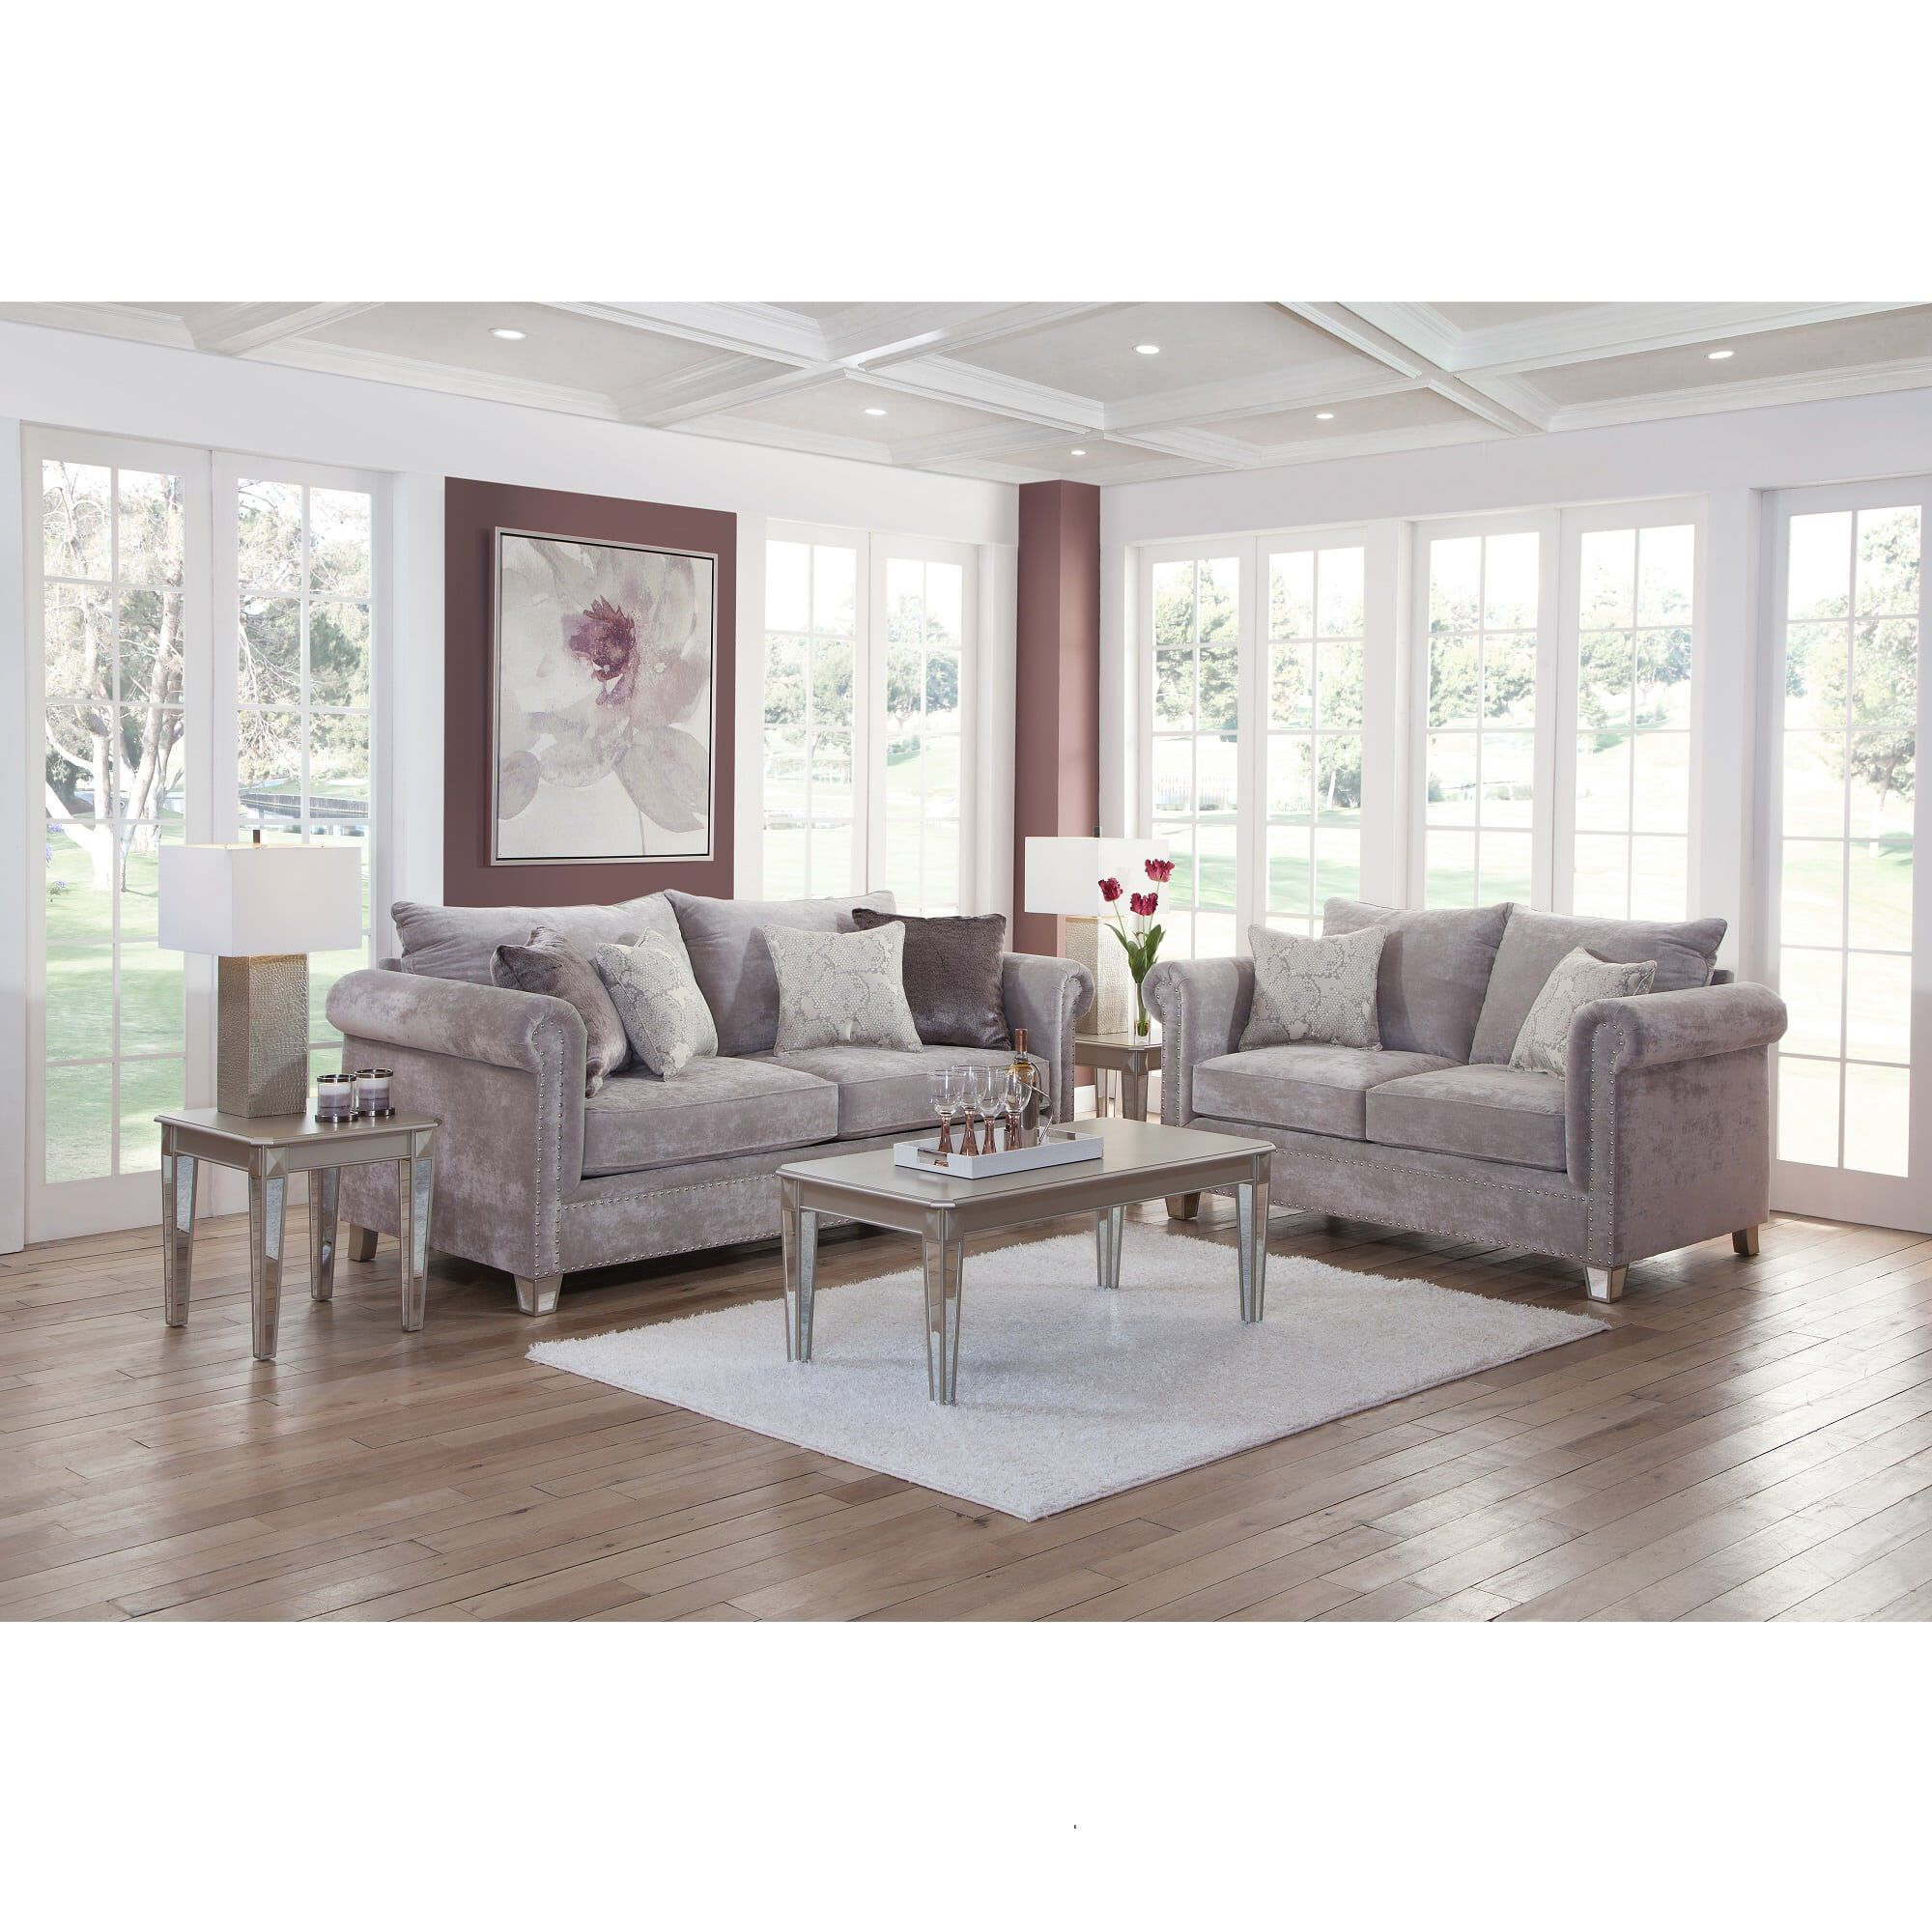 living room tables at aaron s open plan interior design ideas 7 piece hollywood collection g000whd jpg sw 1350 sh 1000 sm fit